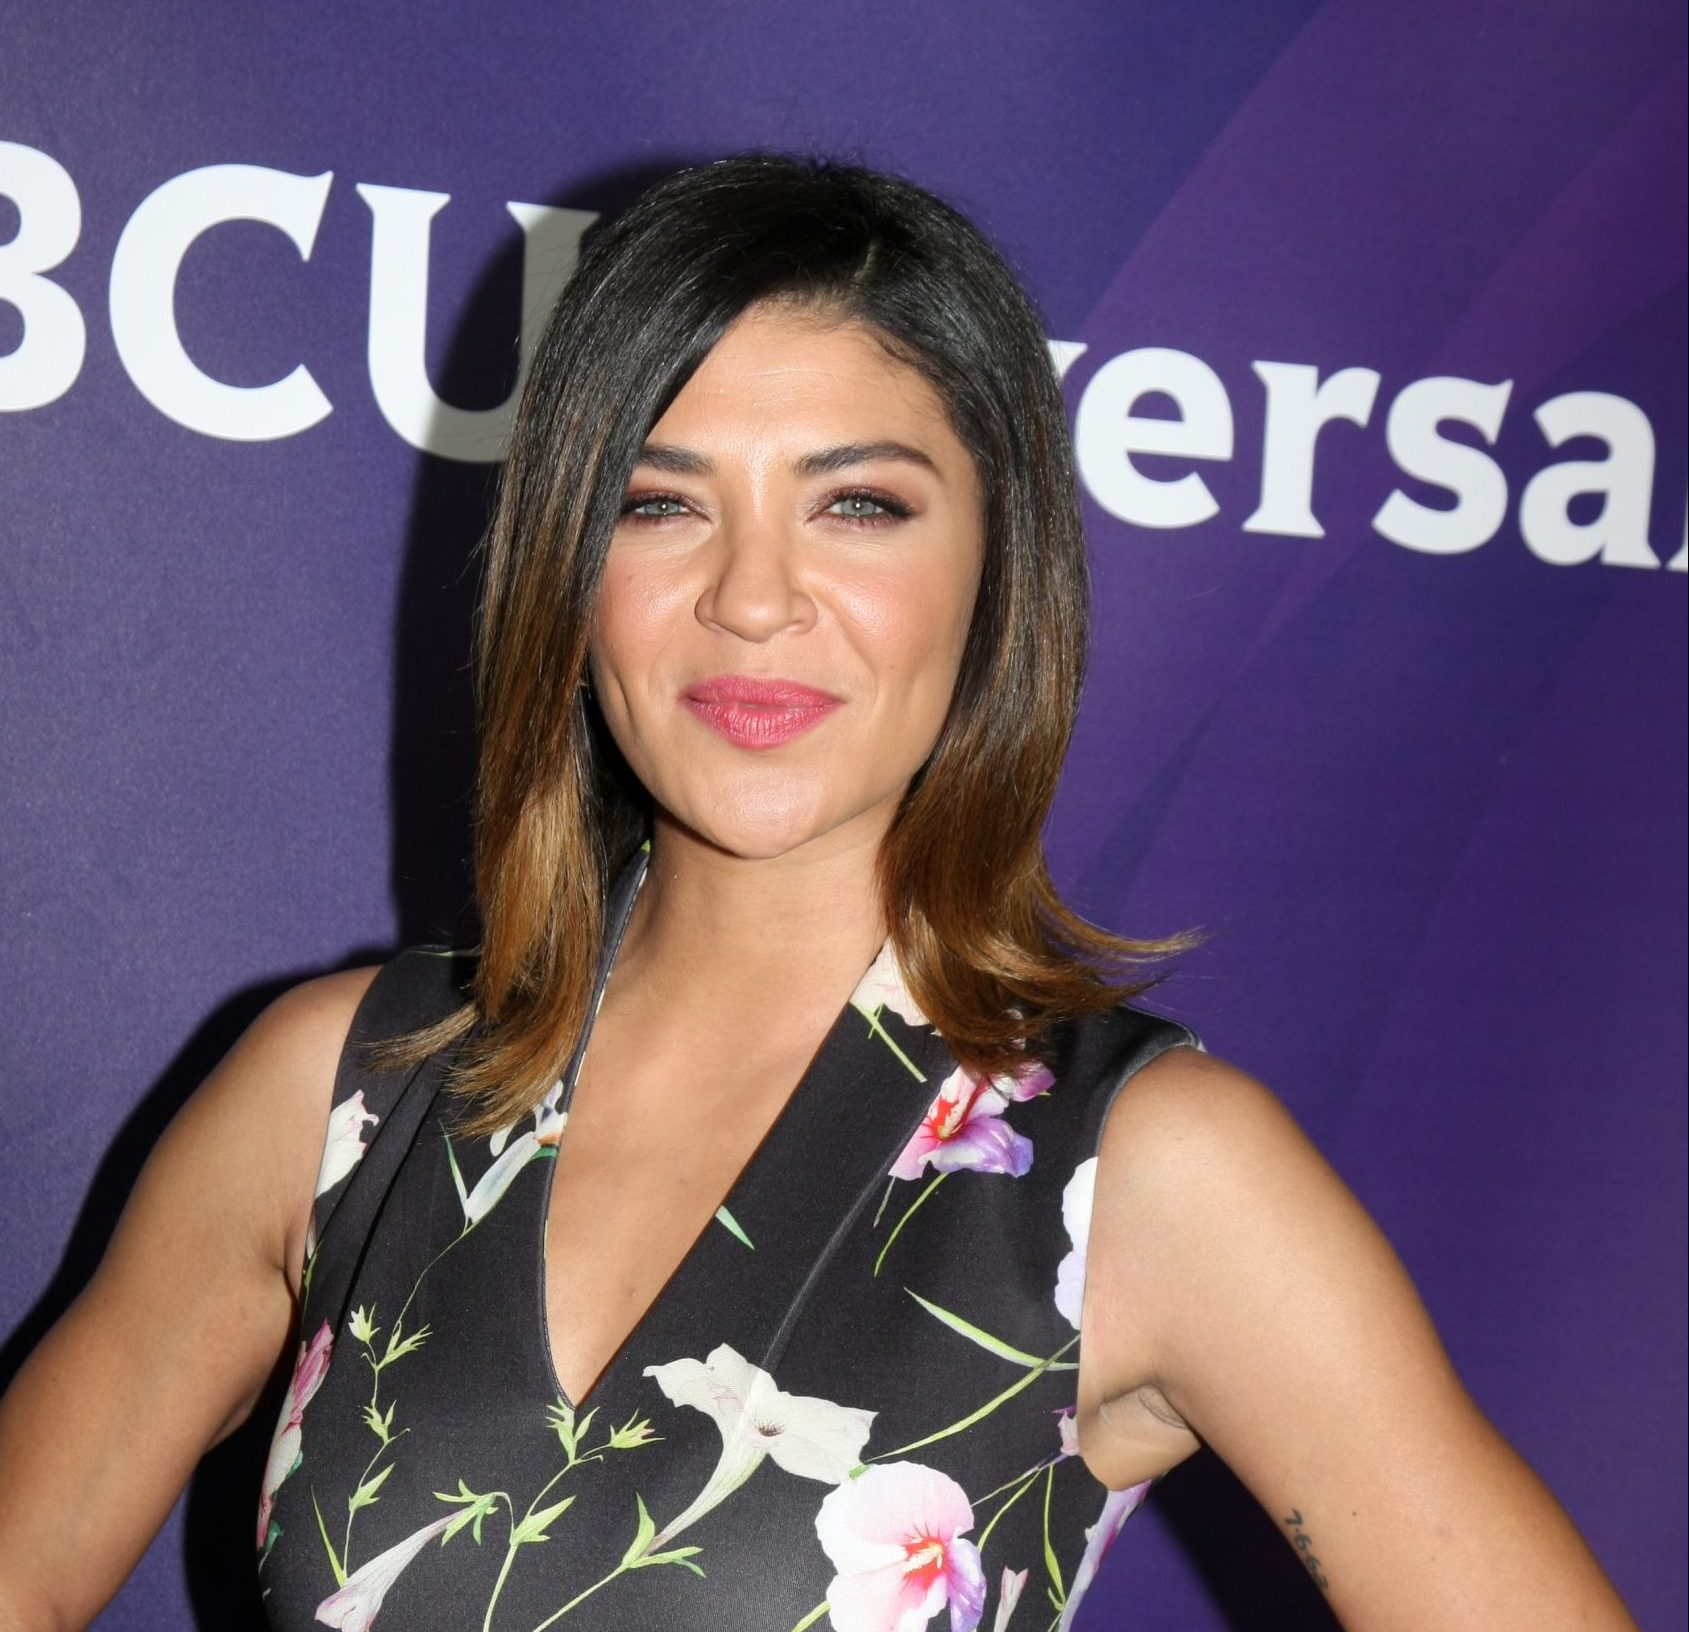 Jessica Szohr smiles at a red carpet event. She has dark brown hair that sits above her shoulders. She wears a floral black sleeveless top. The background is a deep purple.